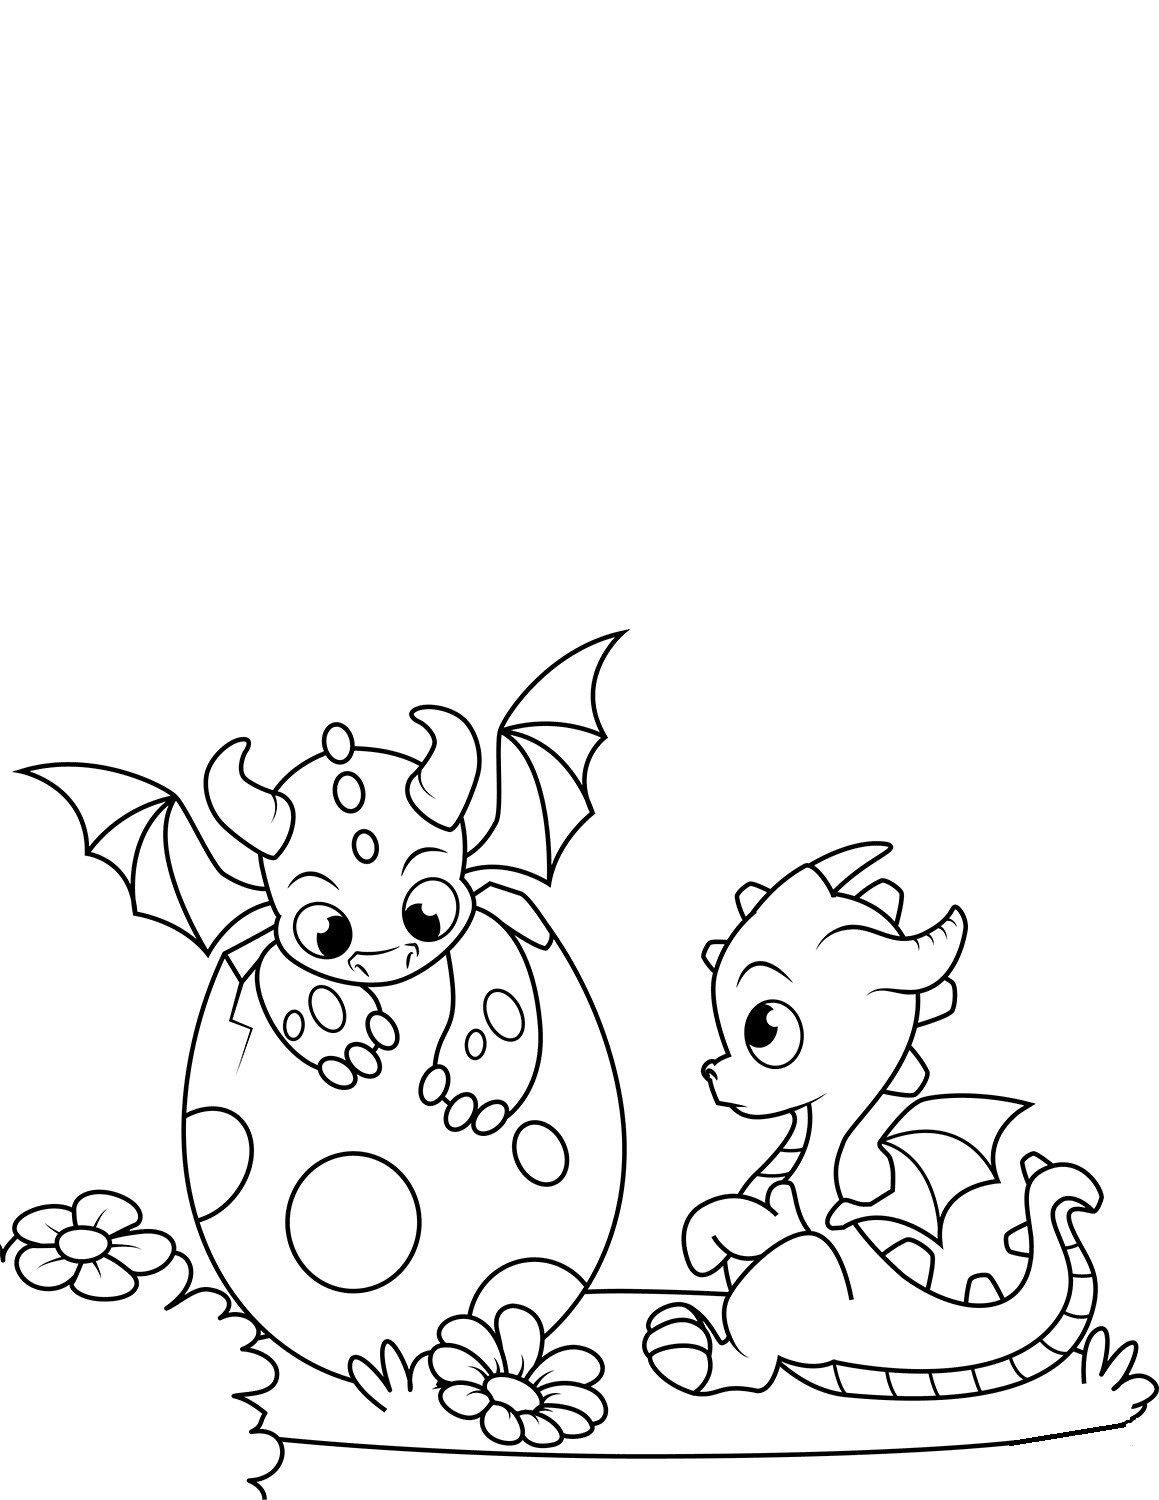 Cute Baby Dragon Coloring Pages For Children Printable Shelter Bunny Coloring Pages Dragon Coloring Page Cartoon Coloring Pages